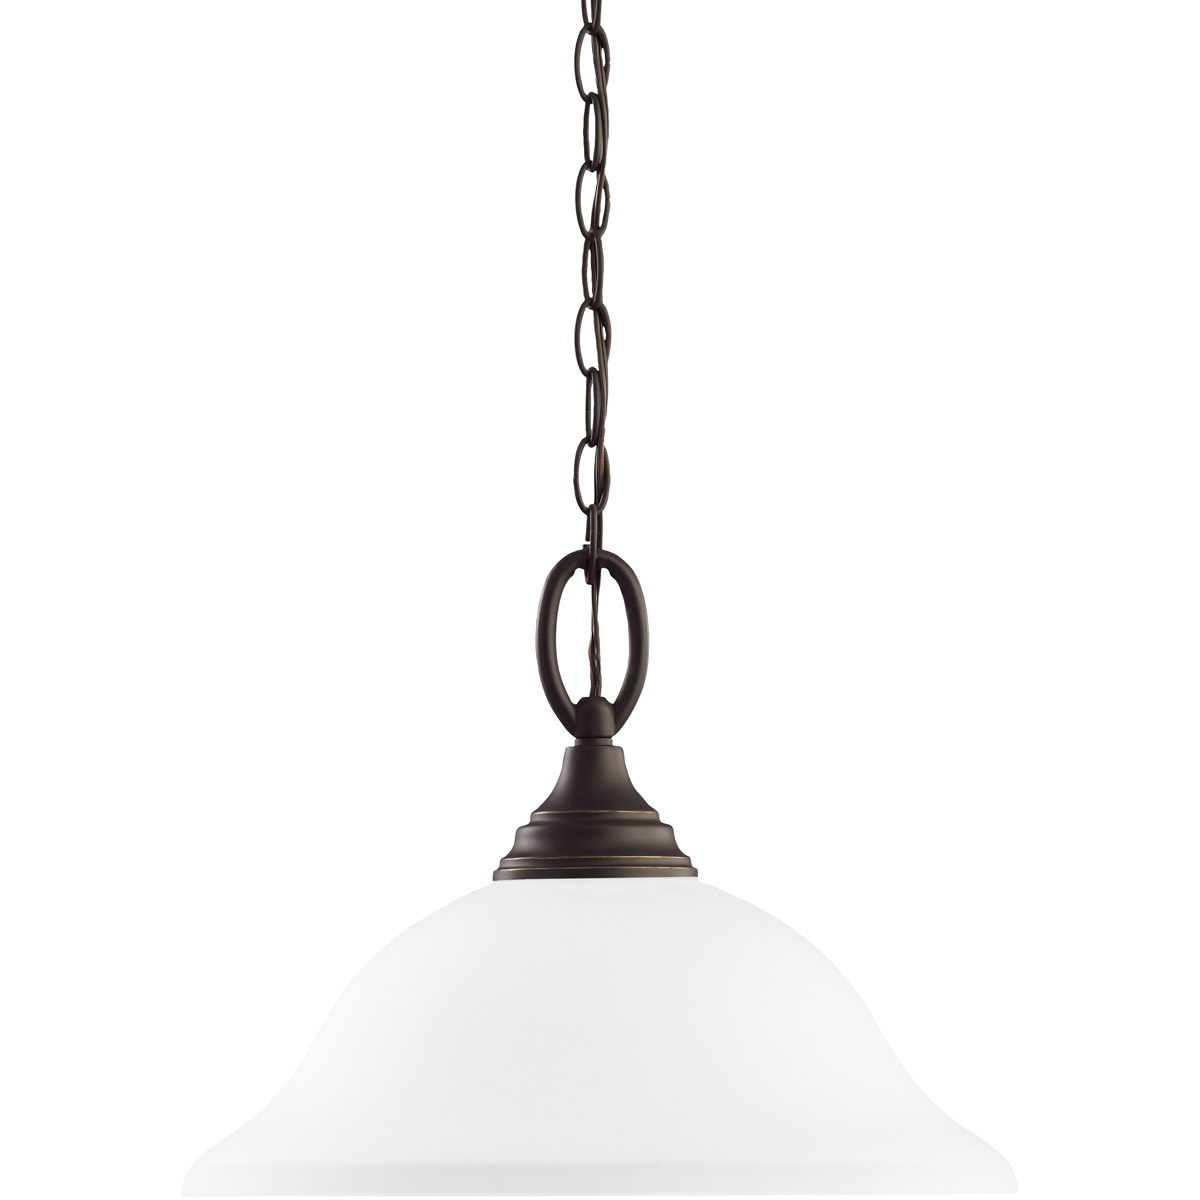 Sea Gull Lighting Wheaton 1 Light Pendant in Heirloom Bronze 65625-782